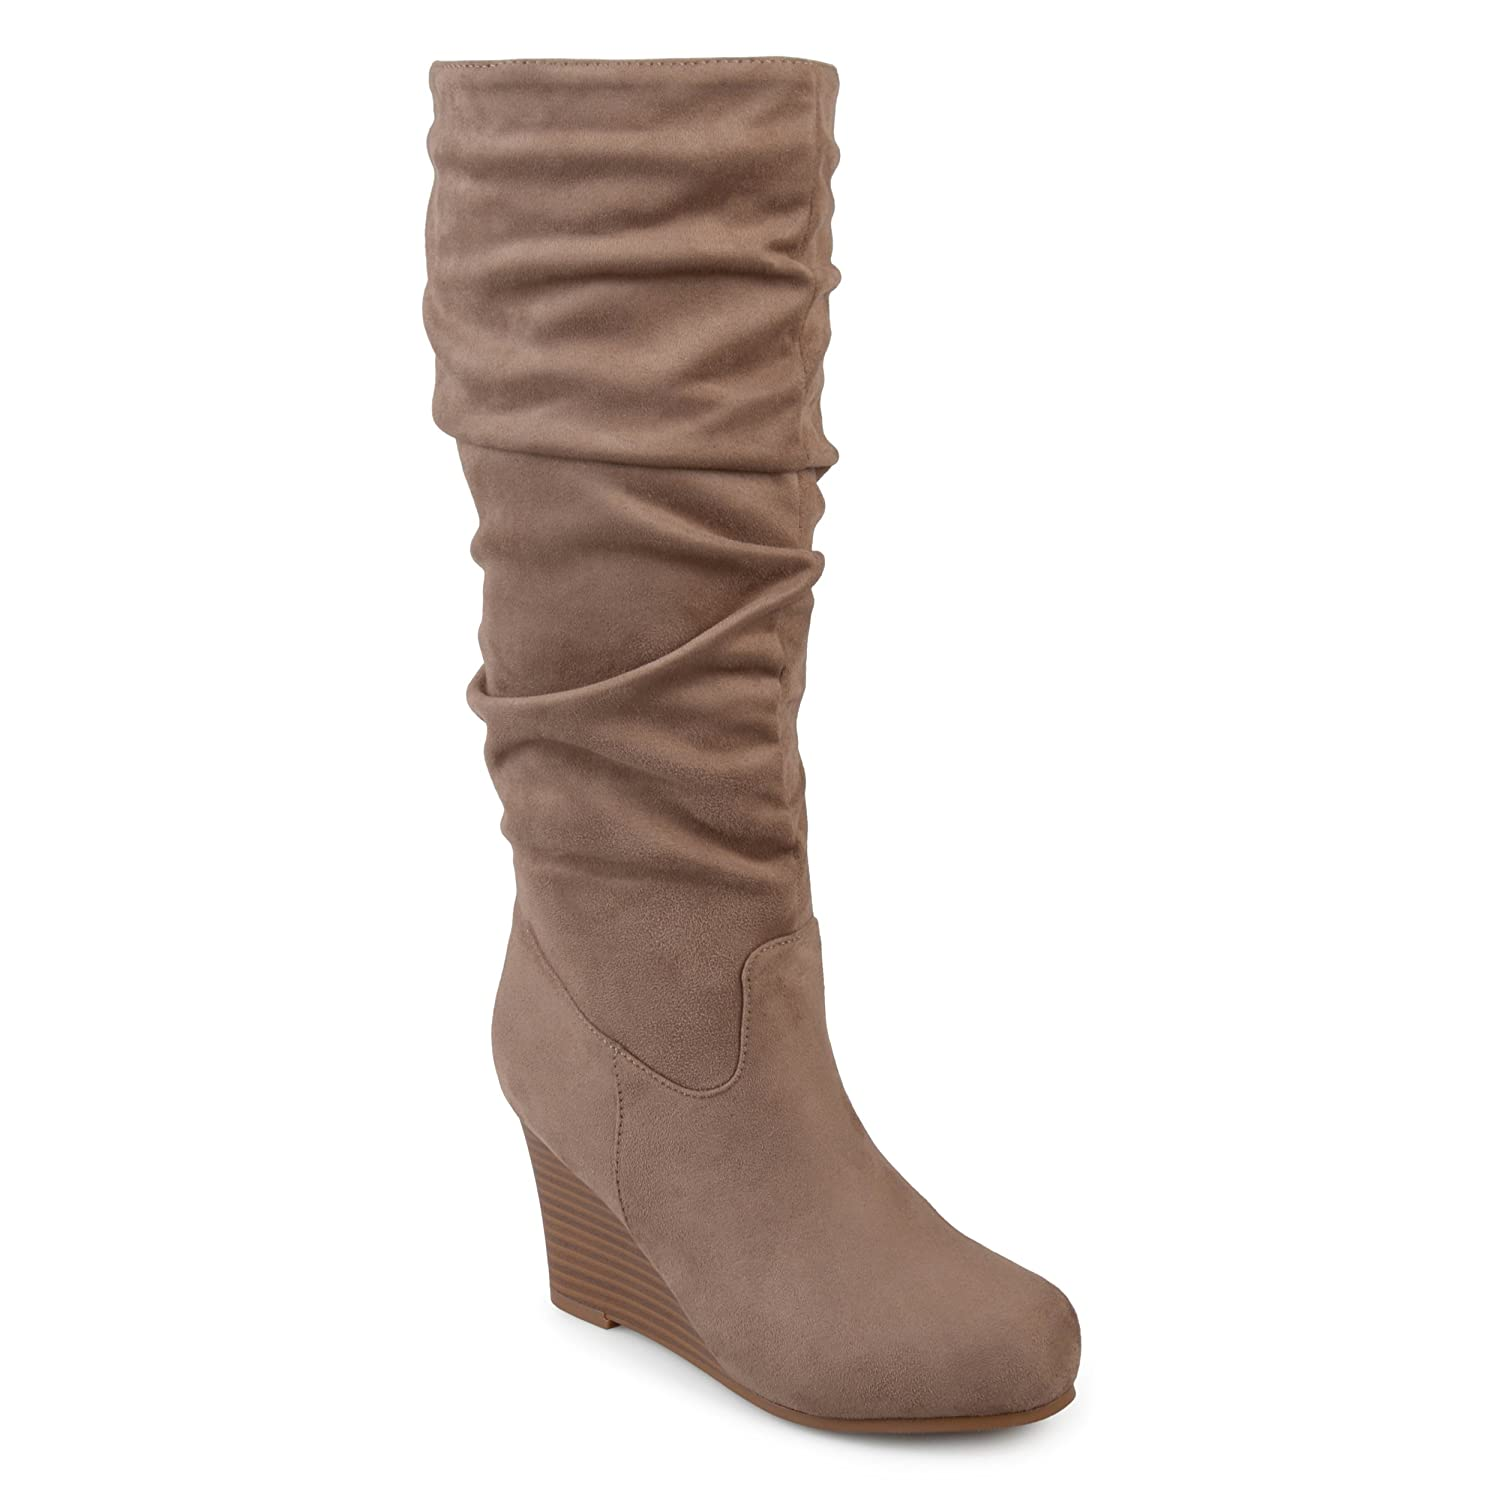 1ff25e714f13 Amazon.com | Journee Collection Womens Regular and Wide Calf Slouchy  Mid-Calf Wedge Boots | Mid-Calf